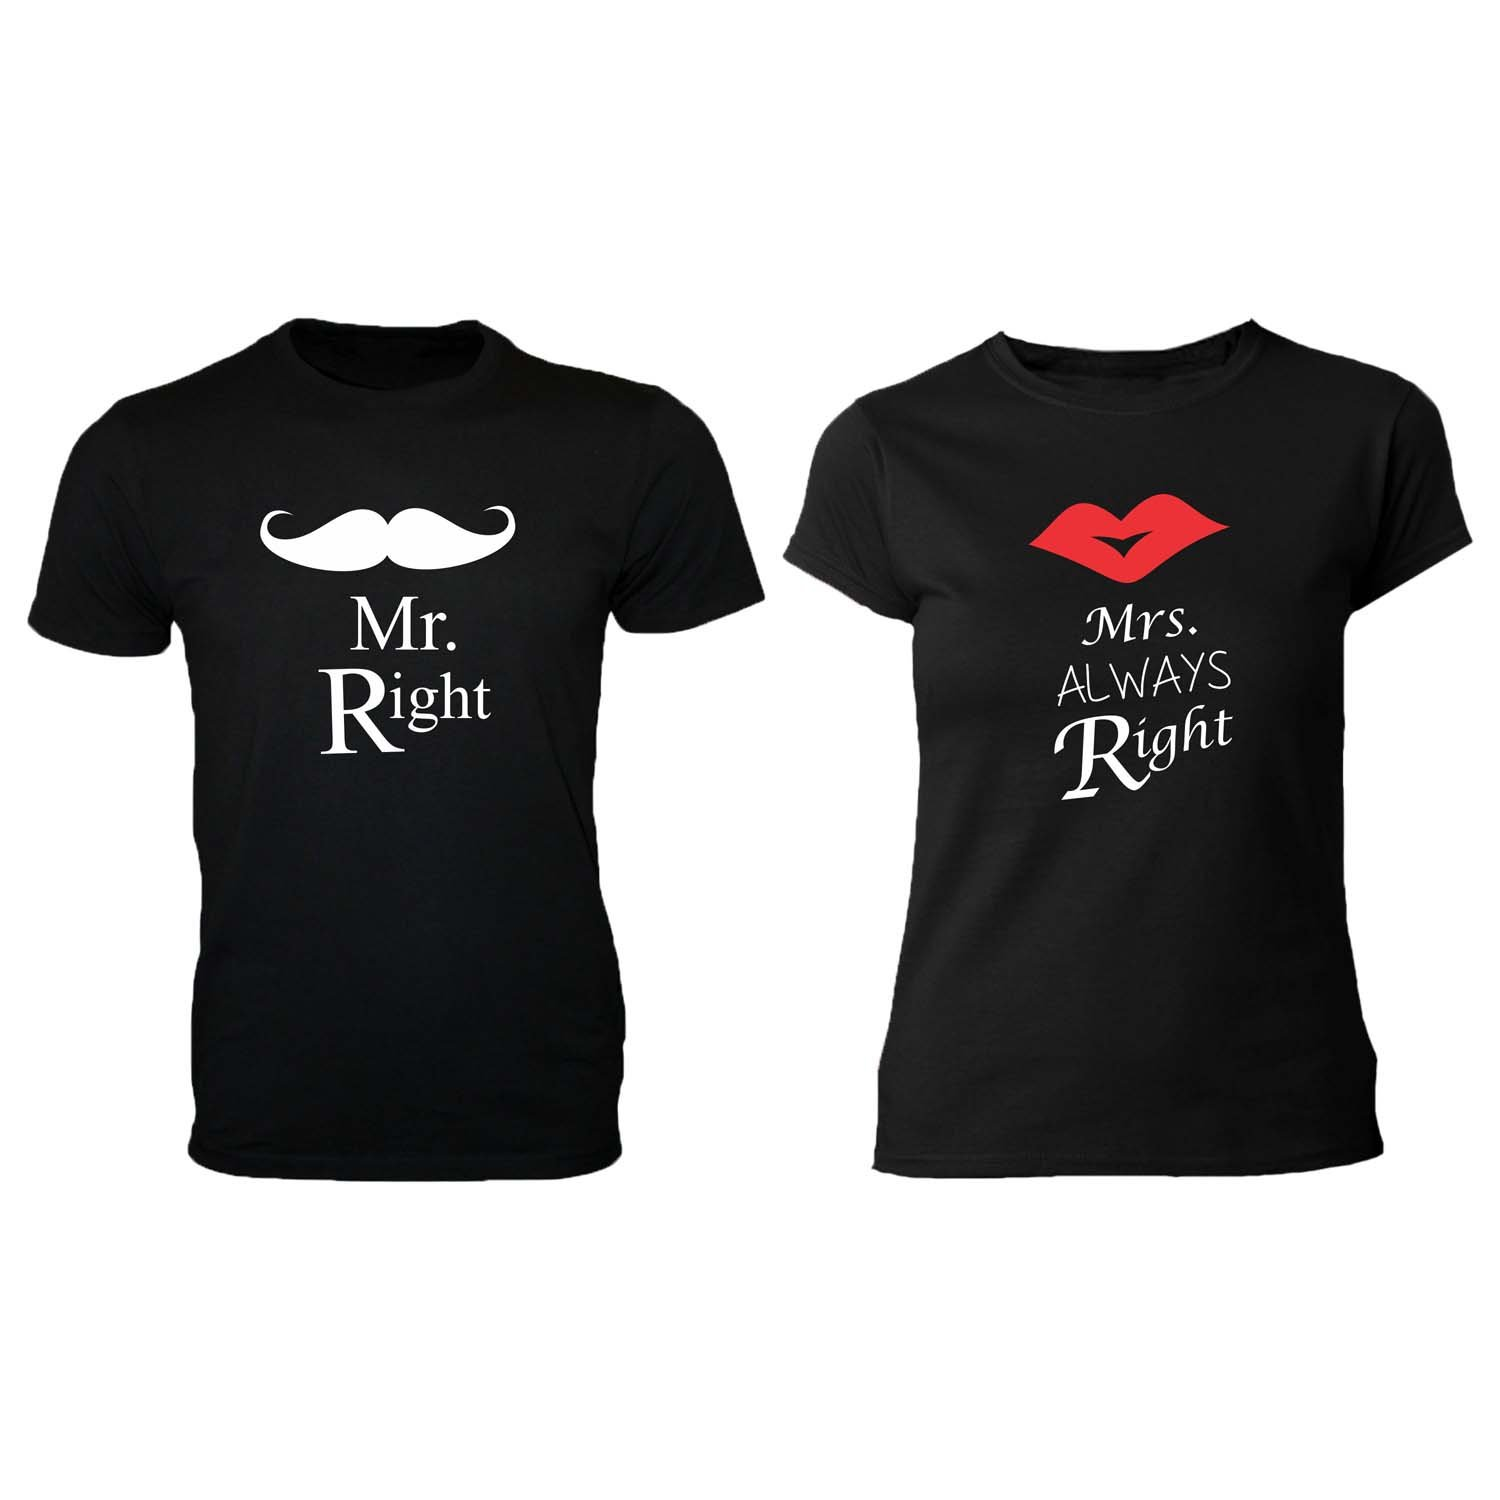 Top 10 Best Couple T-shirt Under Rs 1000 in India